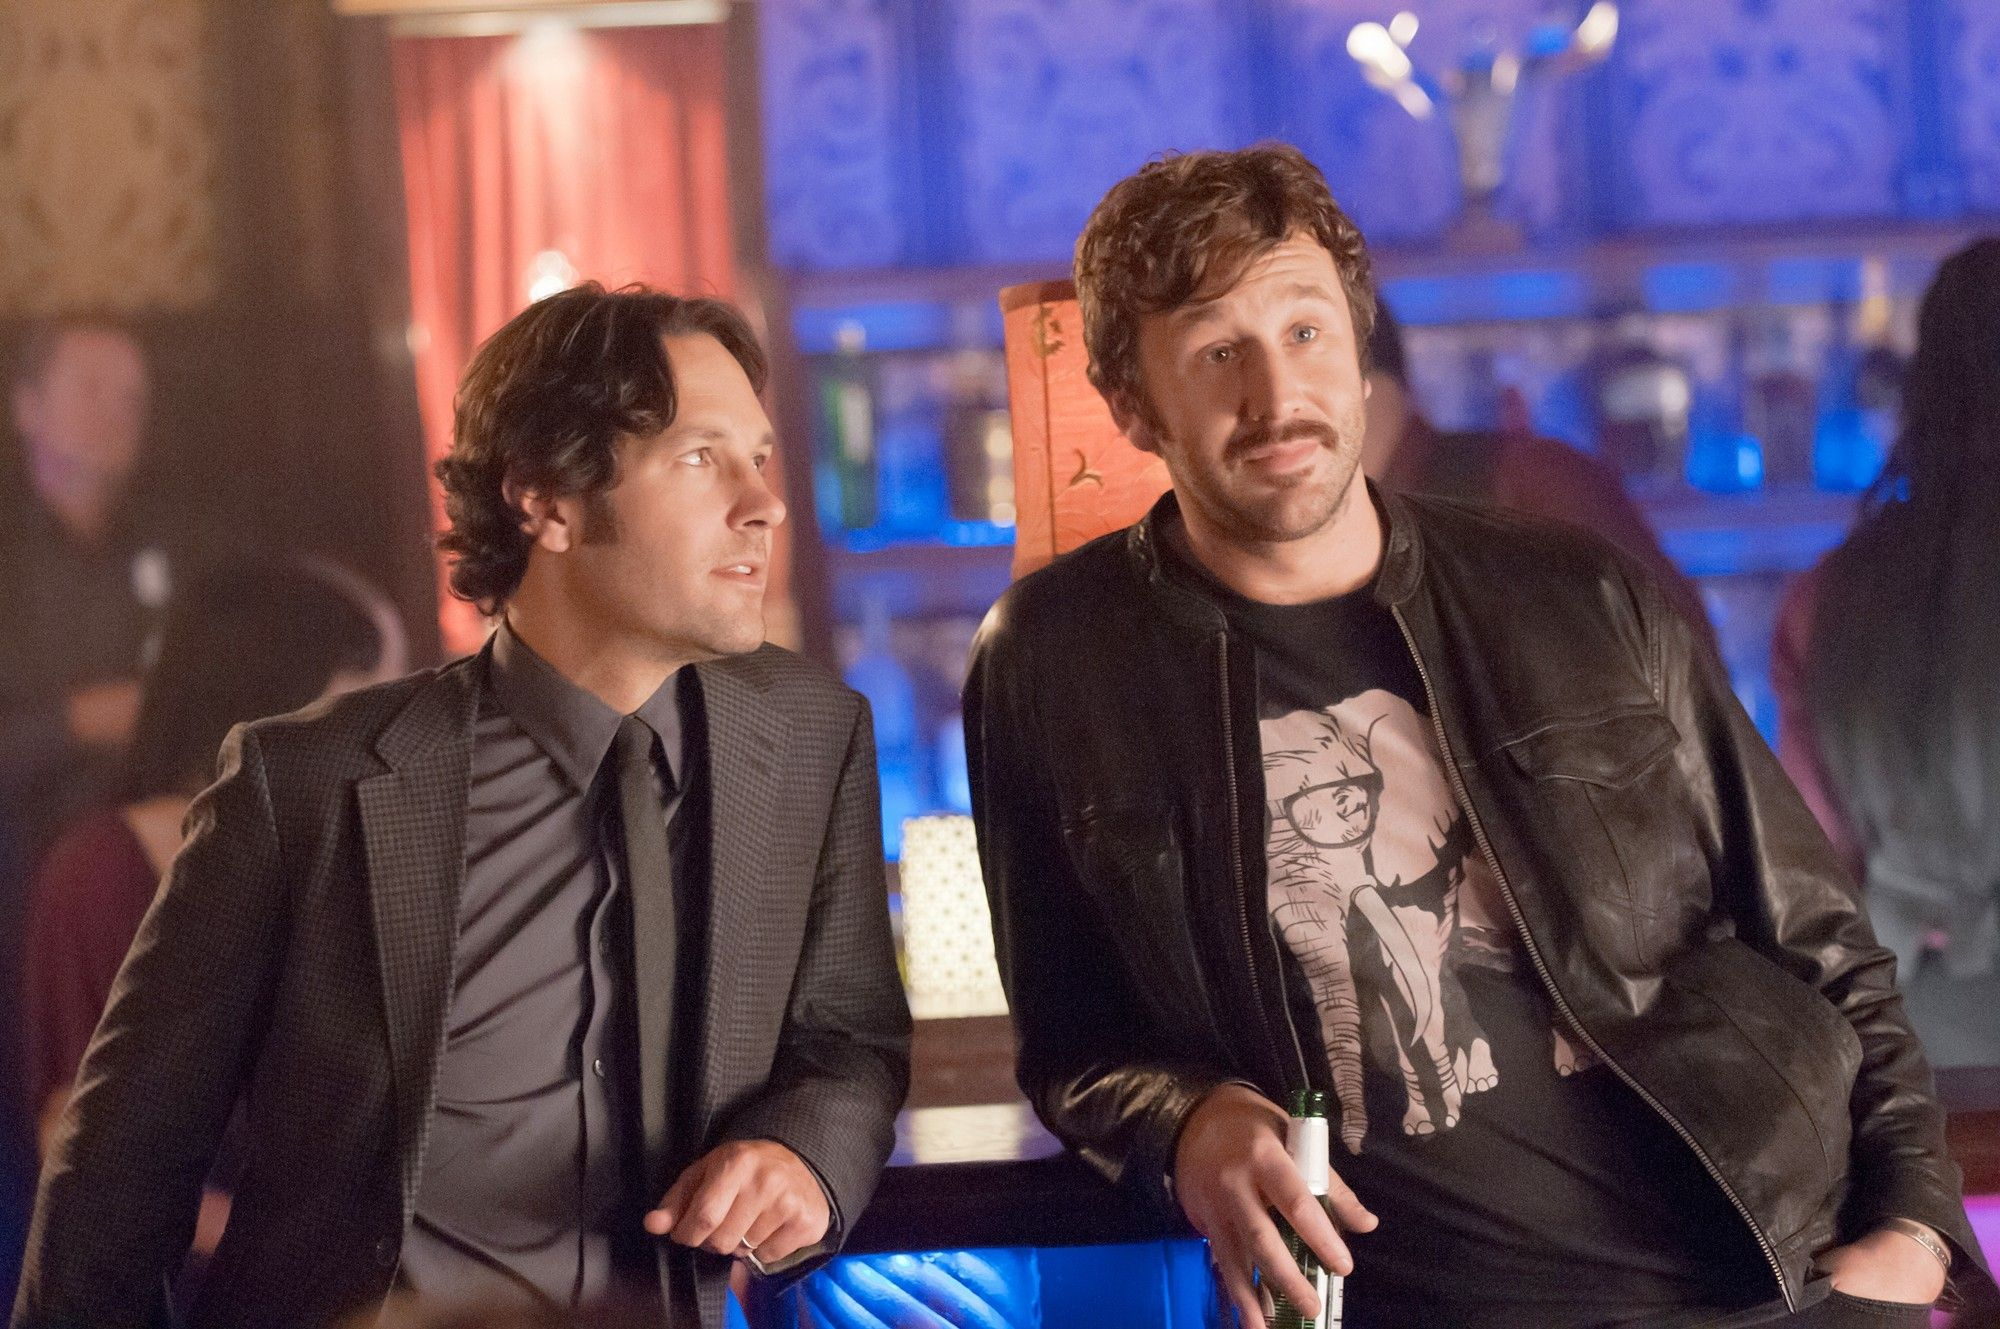 Paul Rudd stars as Pete and Chris O'Dowd stars as Ronnie in Universal Pictures' This Is 40 (2012)